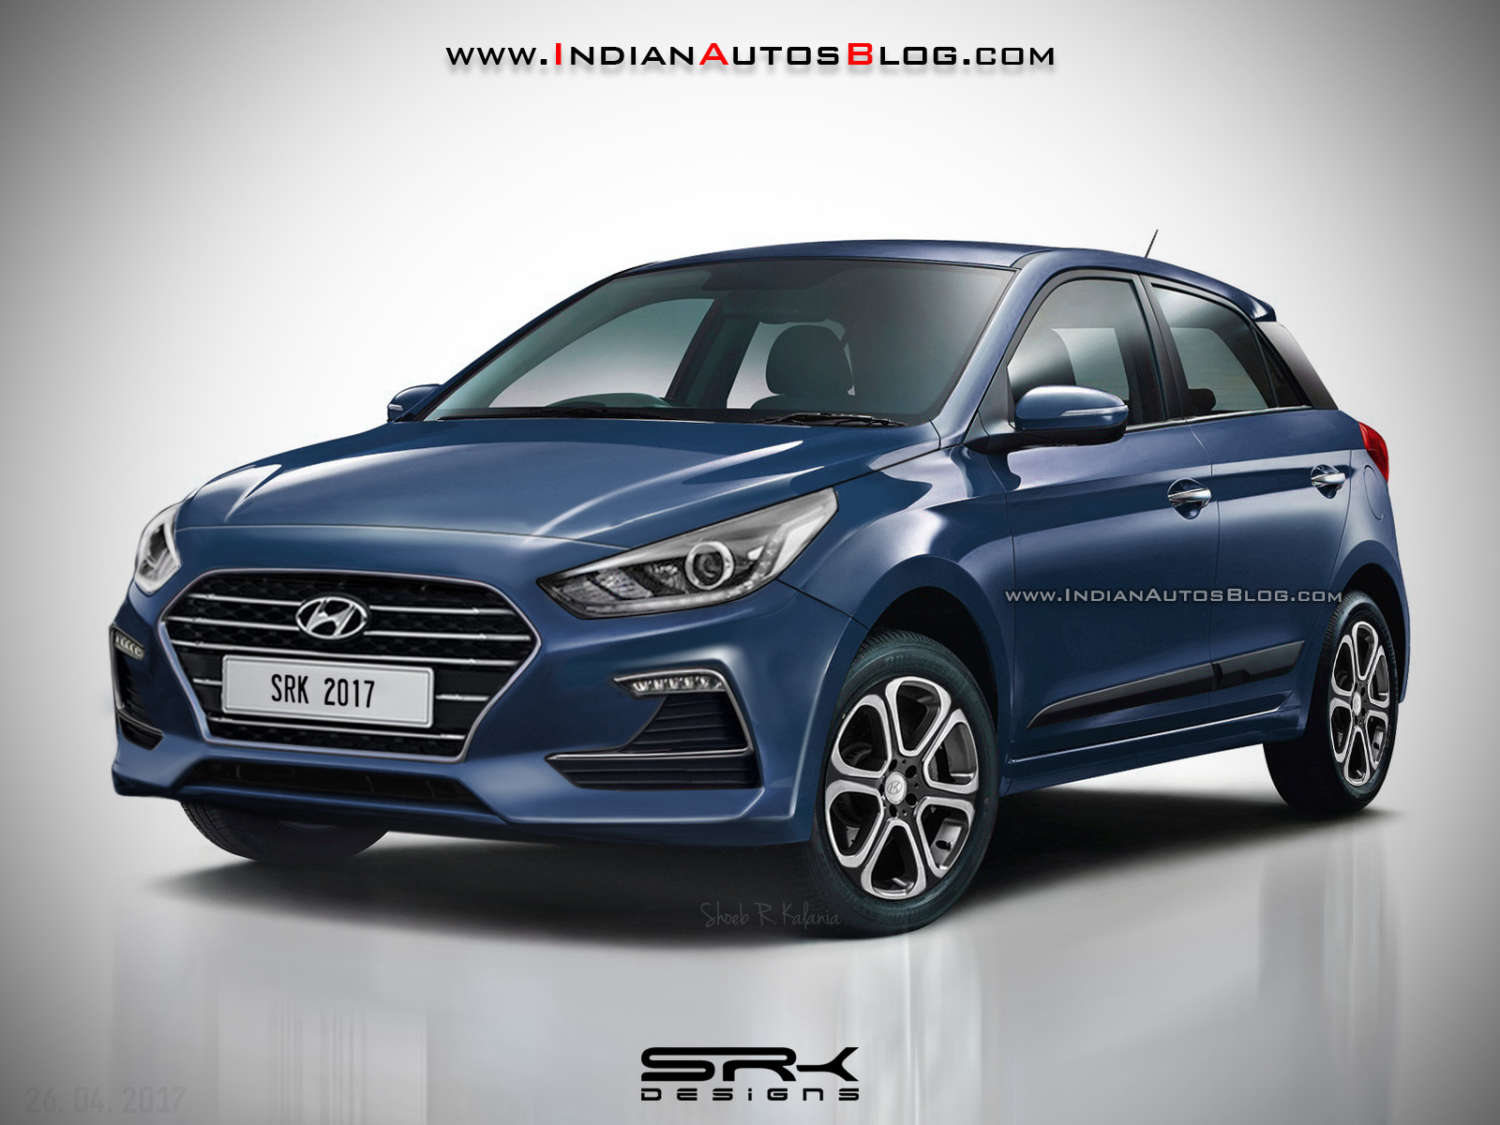 2018 Hyundai Elite I20 Hyundai I20 Facelift Gets